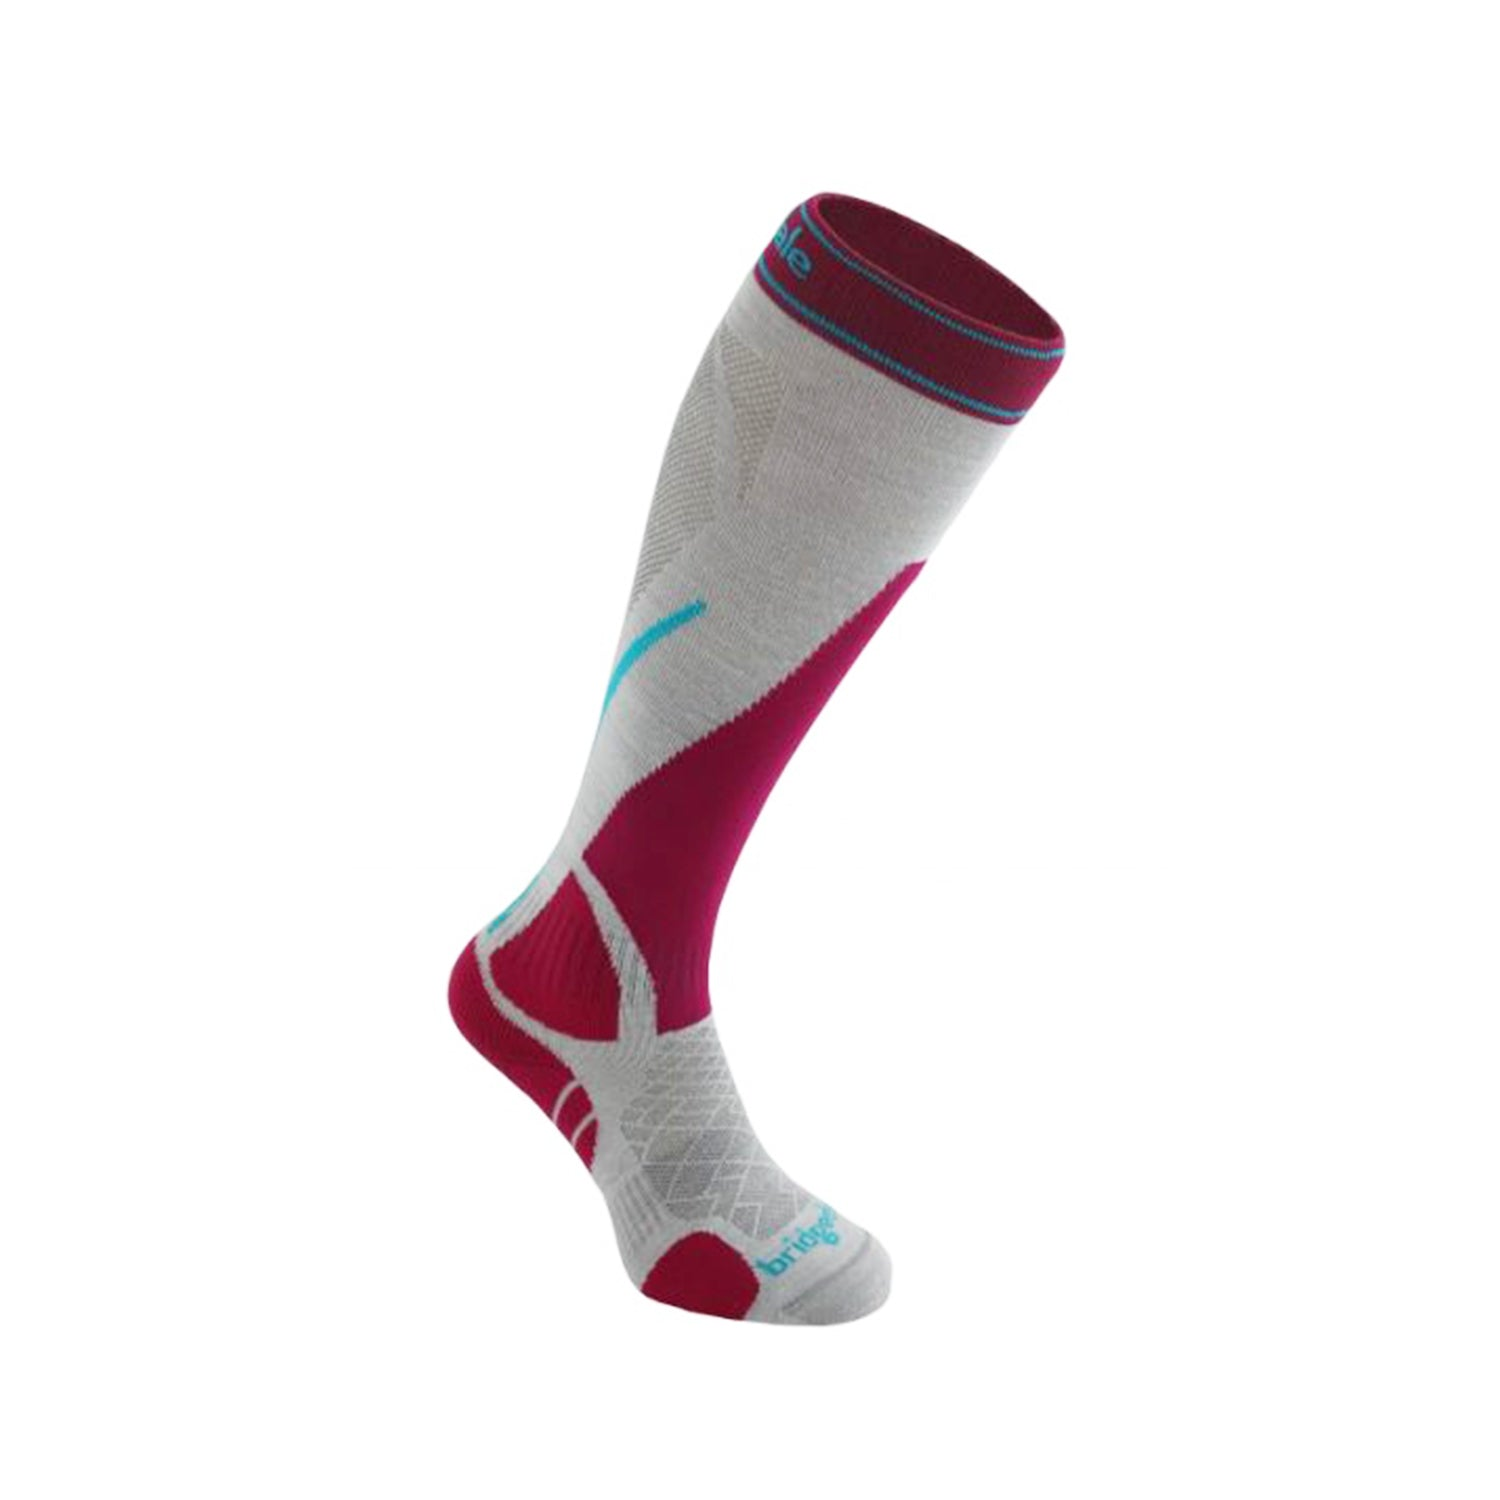 Bridgedale Women Merino Fusion Ski Socks - Vertige Light